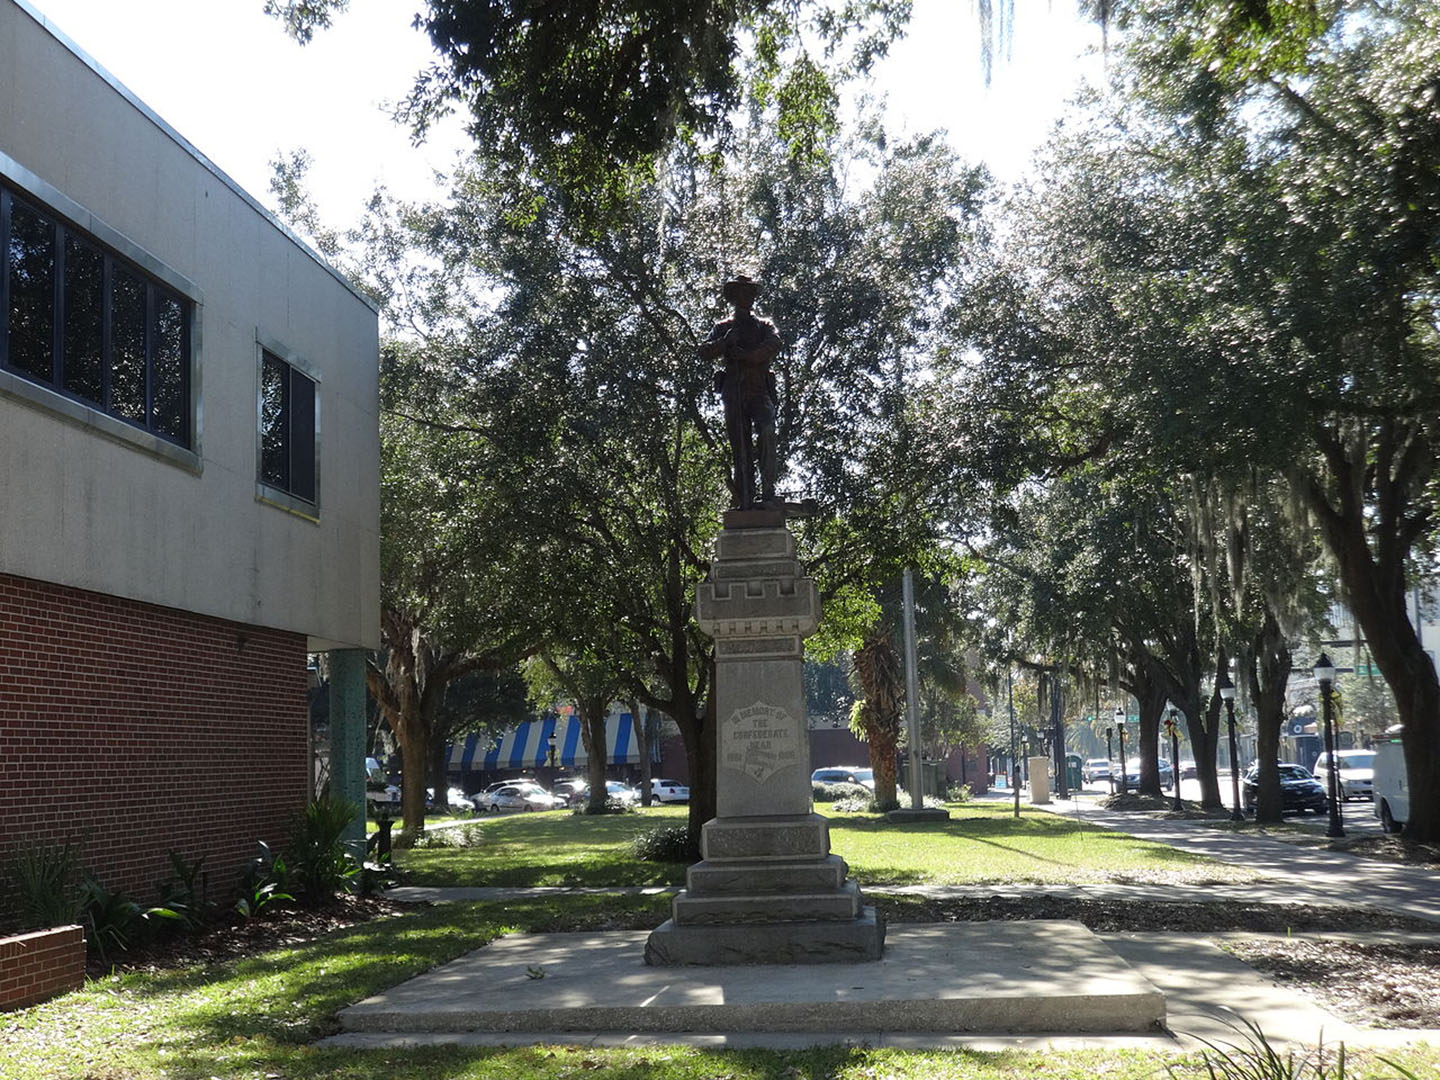 """A monument known to locals as """"Old Joe"""" was moved from outside the Alachua County Administration Building in downtown Gainesville, Florida to a private cemetery outside the city. (Wikimedia Commons)"""